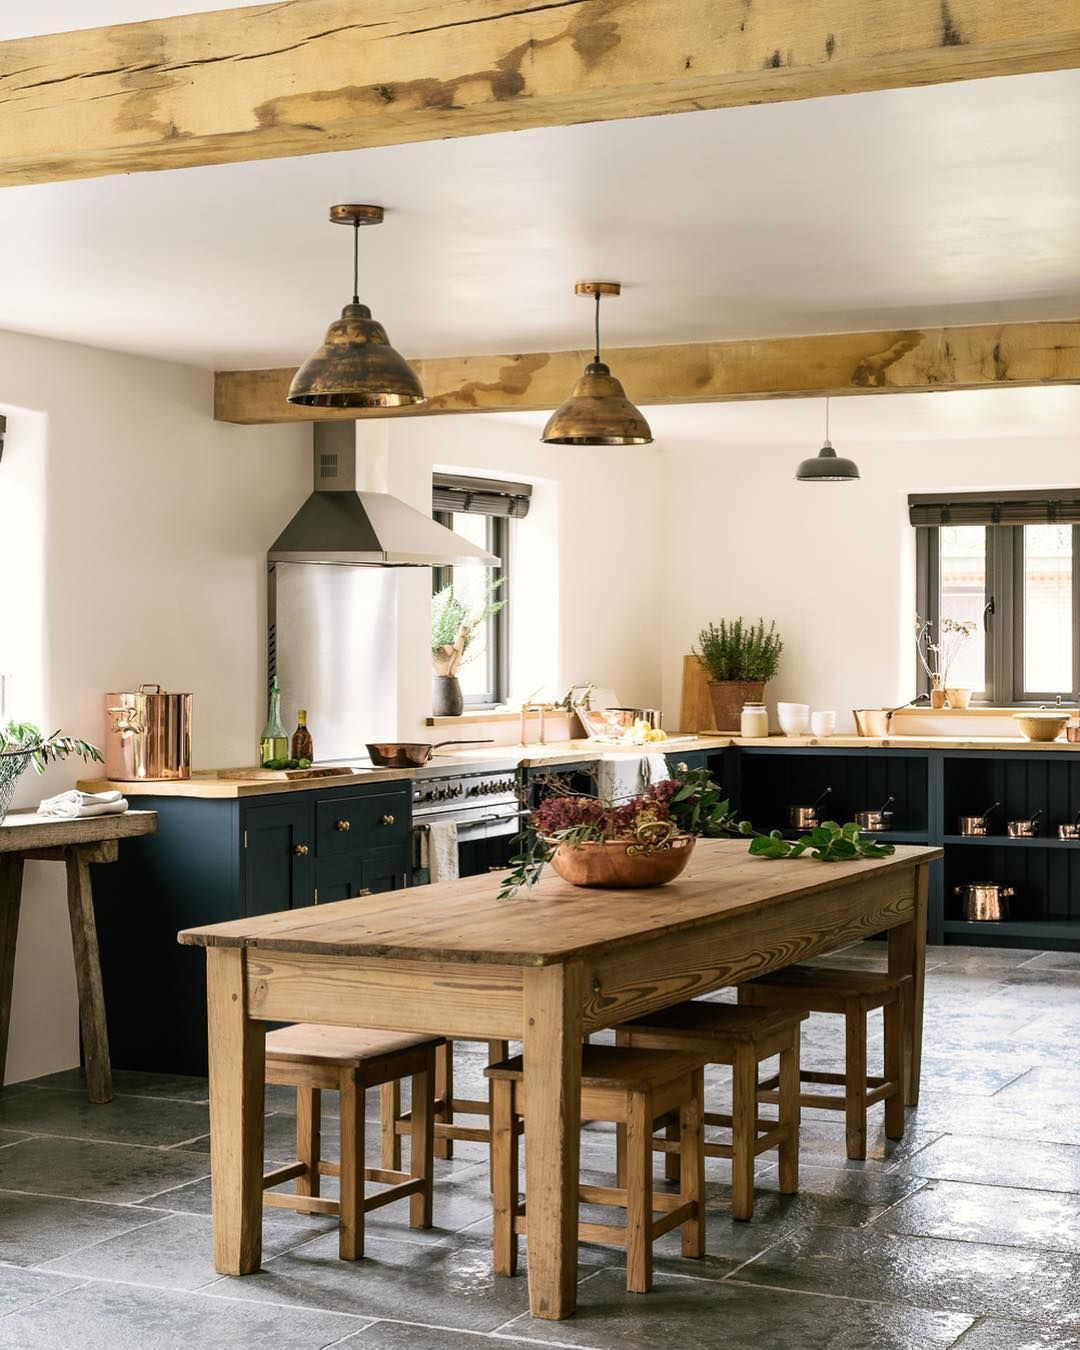 10 Steps To The Perfect Rustic Kitchen: 10 Amazing English Country Kitchens By DeVOL